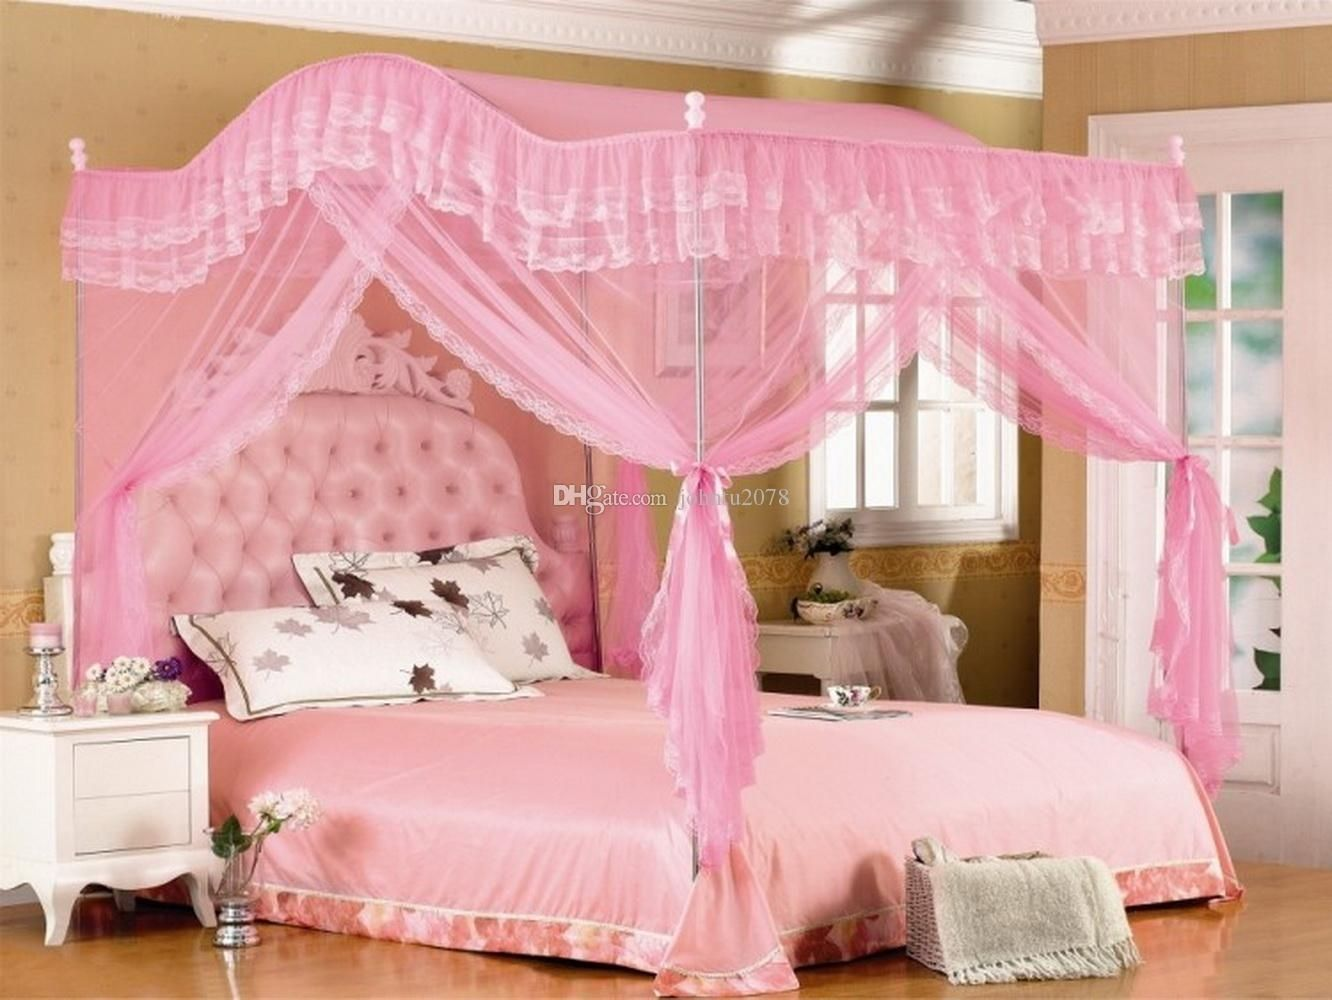 Princess Canopy Bed For Your Daughters Room Interior Decorating Colors Girls Bed Canopy Princess Canopy Bed Toddler Canopy Bed